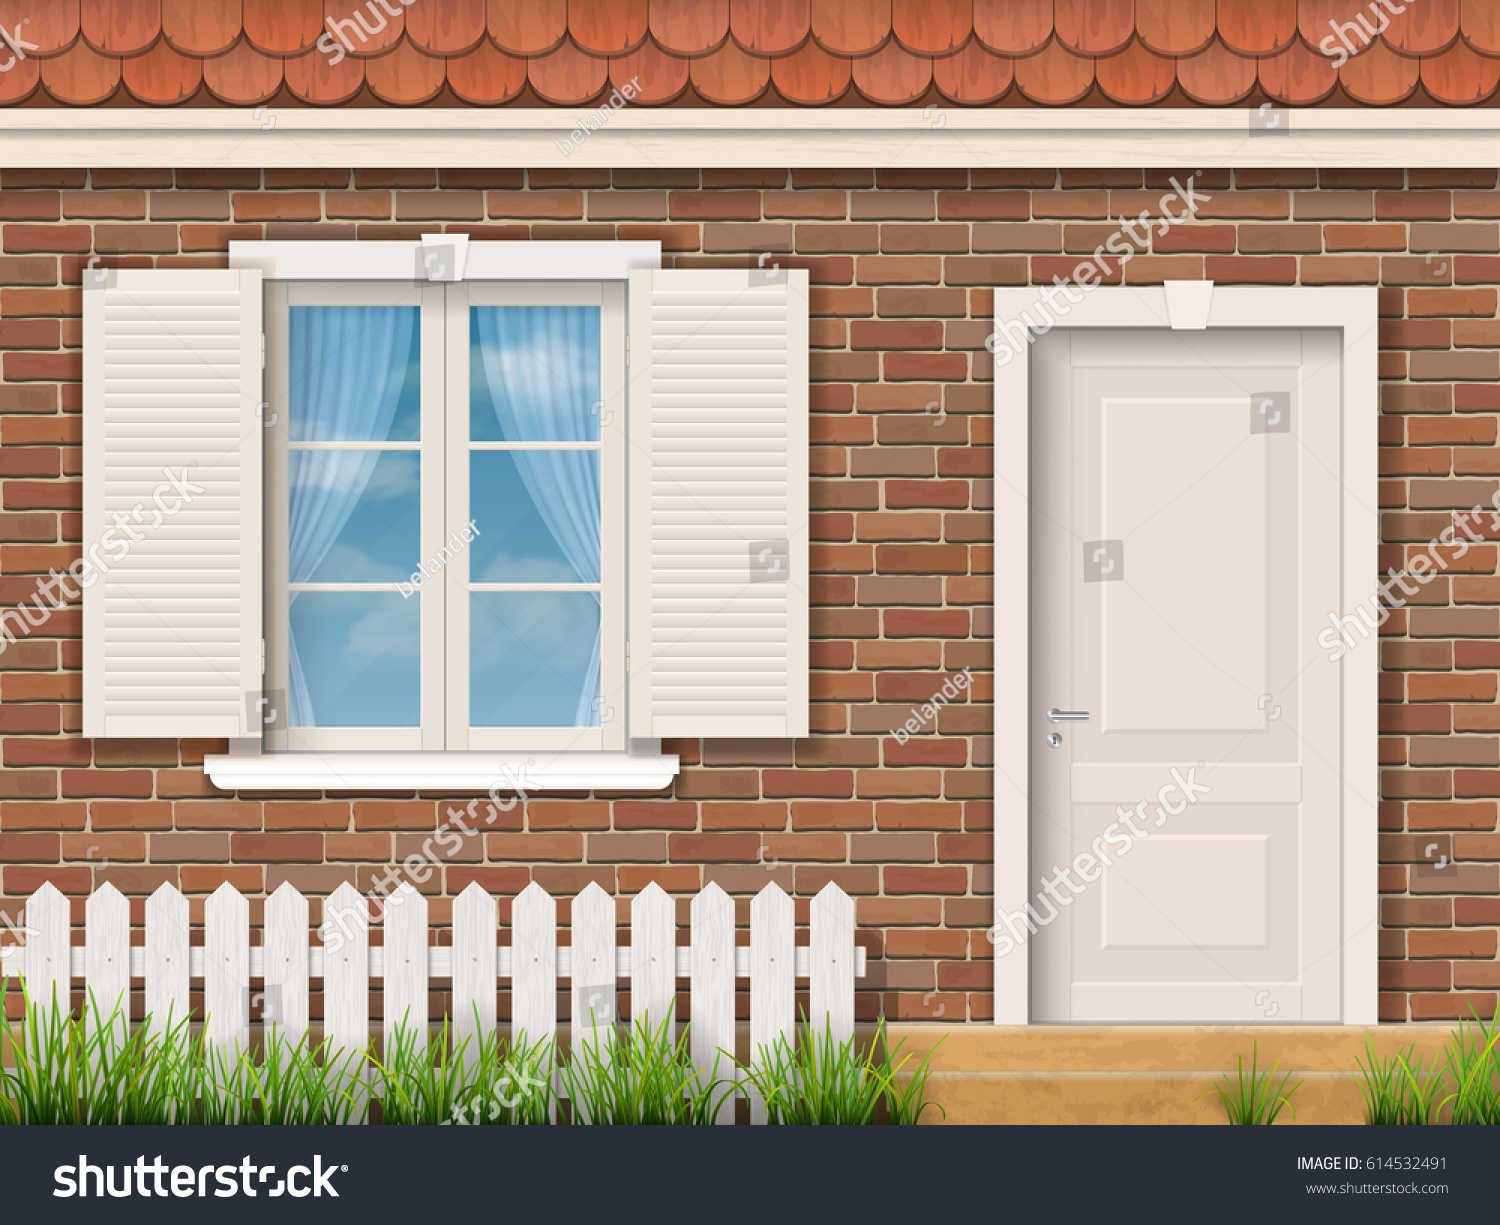 Brick Vector Picture Brick Veneers: Brick Facade Old Building White Window Stock Vector